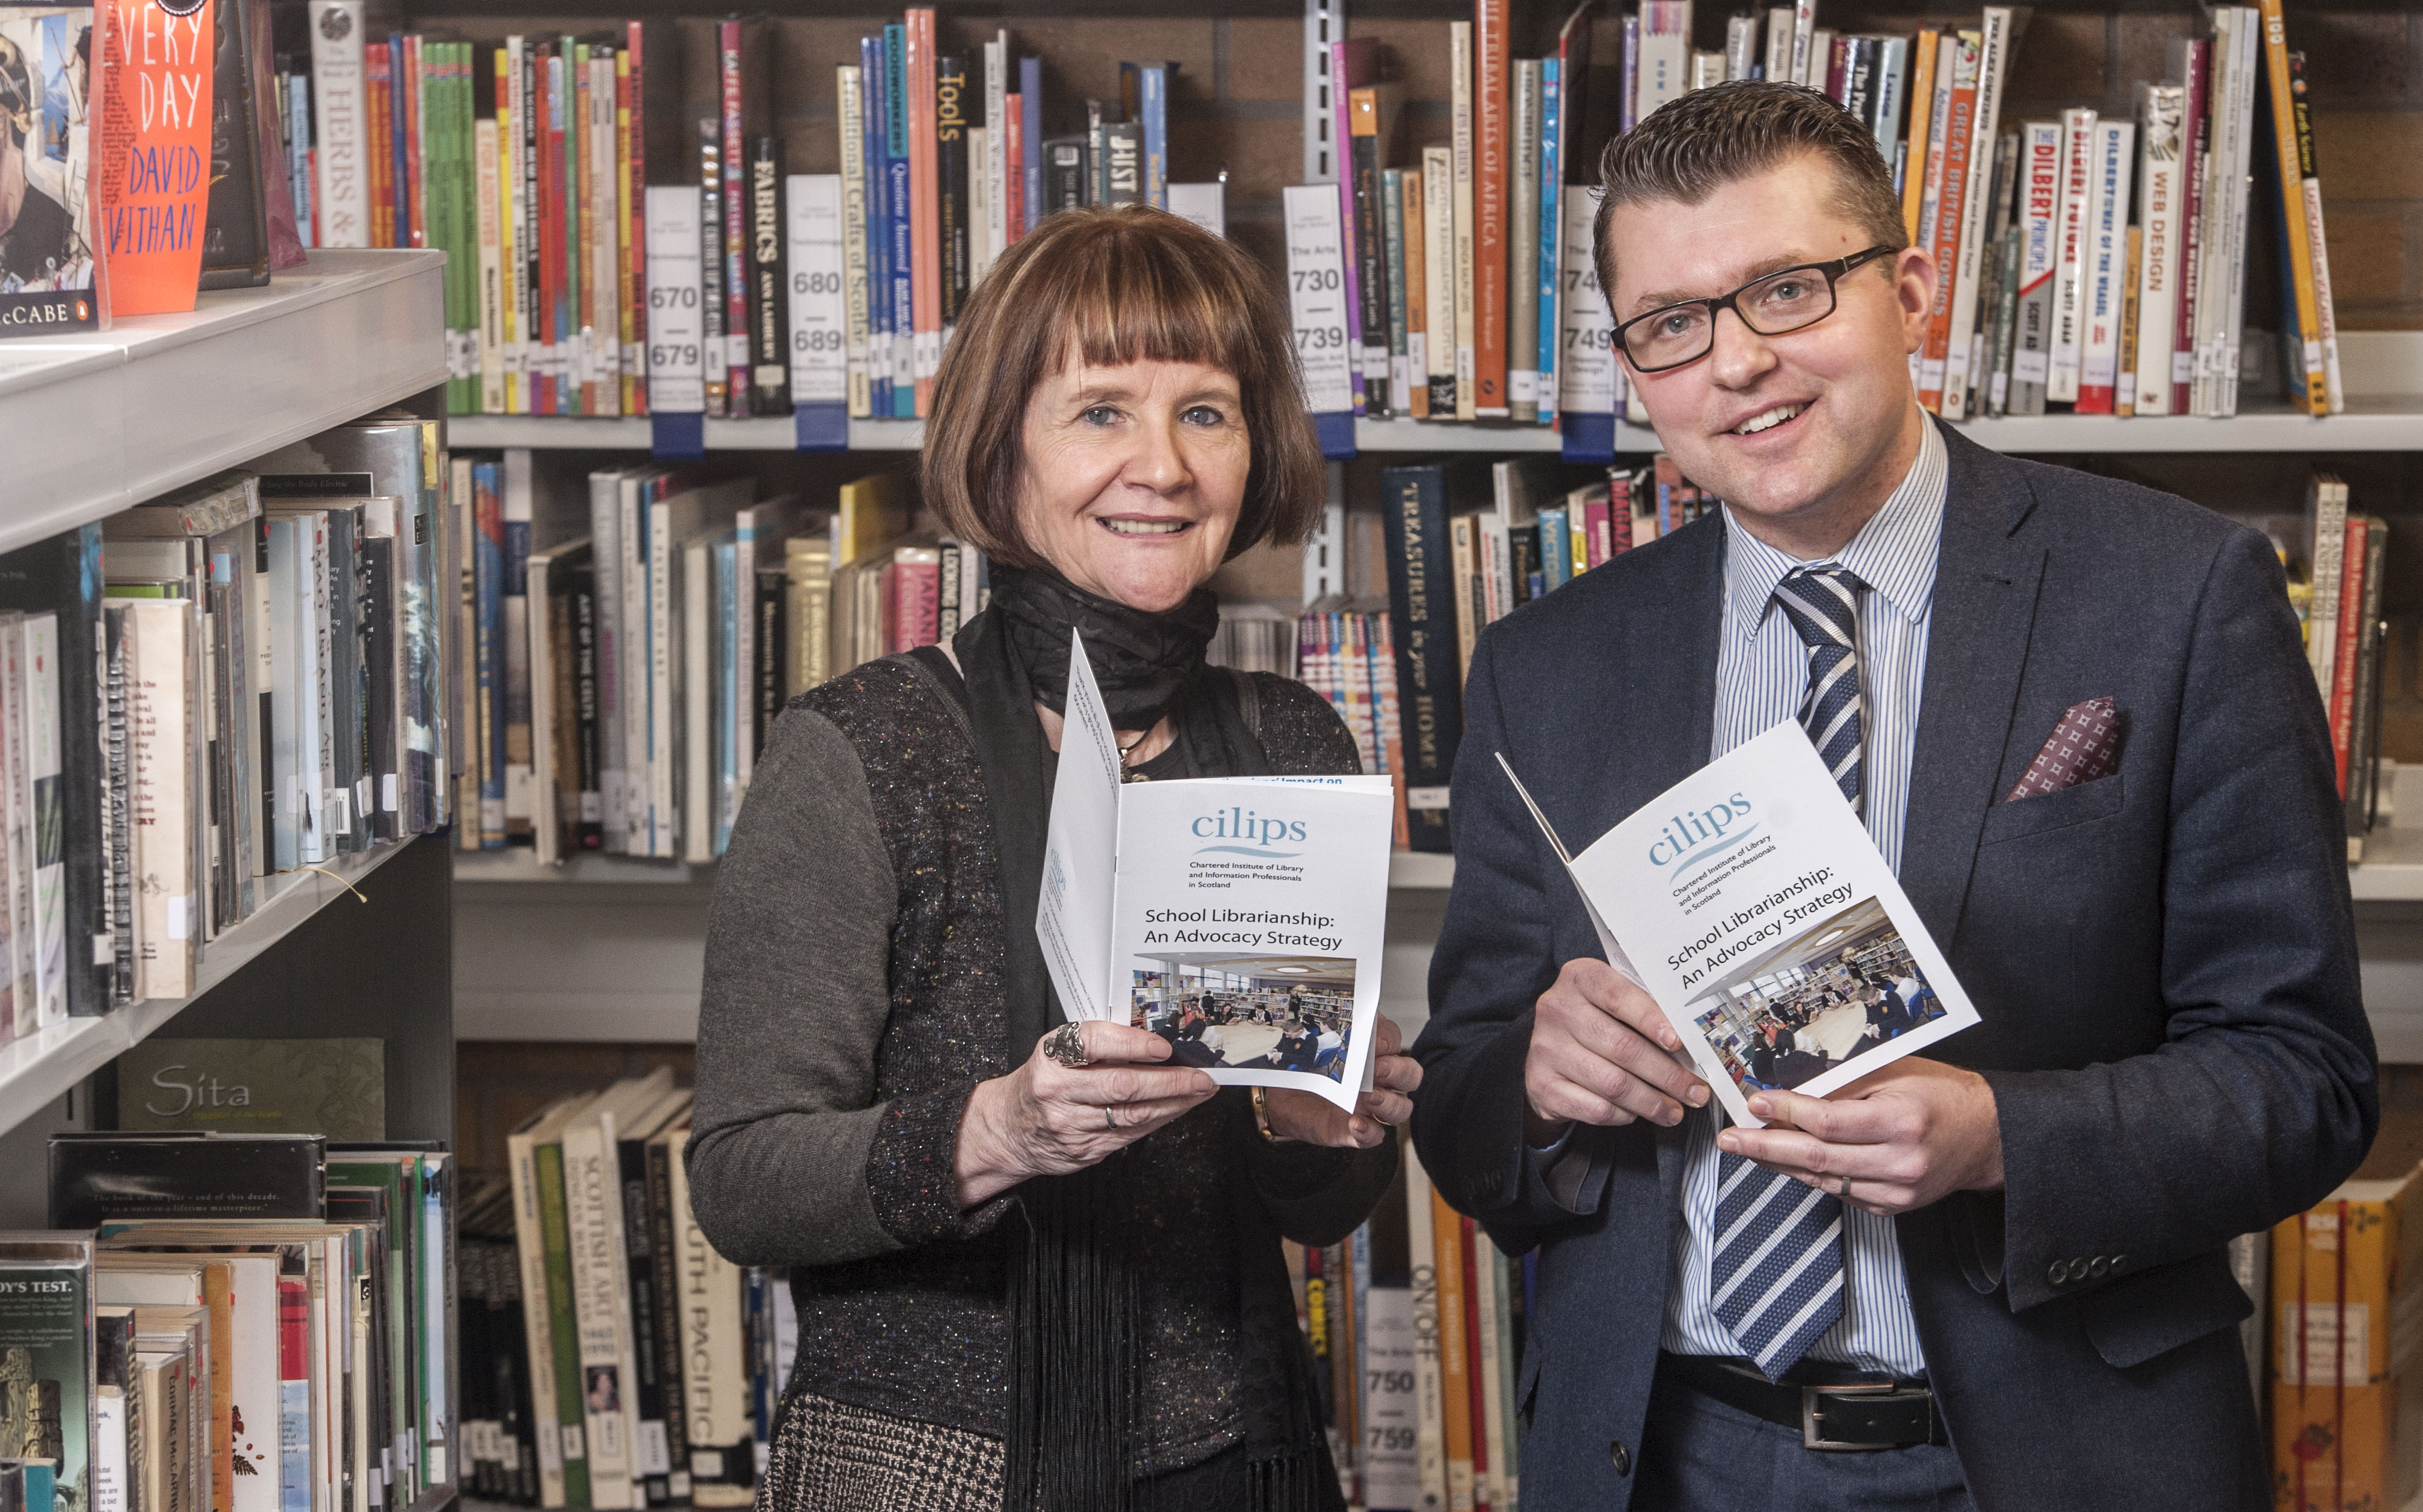 School Librarian Duncan Wright and author and CILIPS Vice President Theresa Breslin with the document that highlights the role of school librarians in the promotion of literature, literacy and more. PIC: PHIL WILKINSON